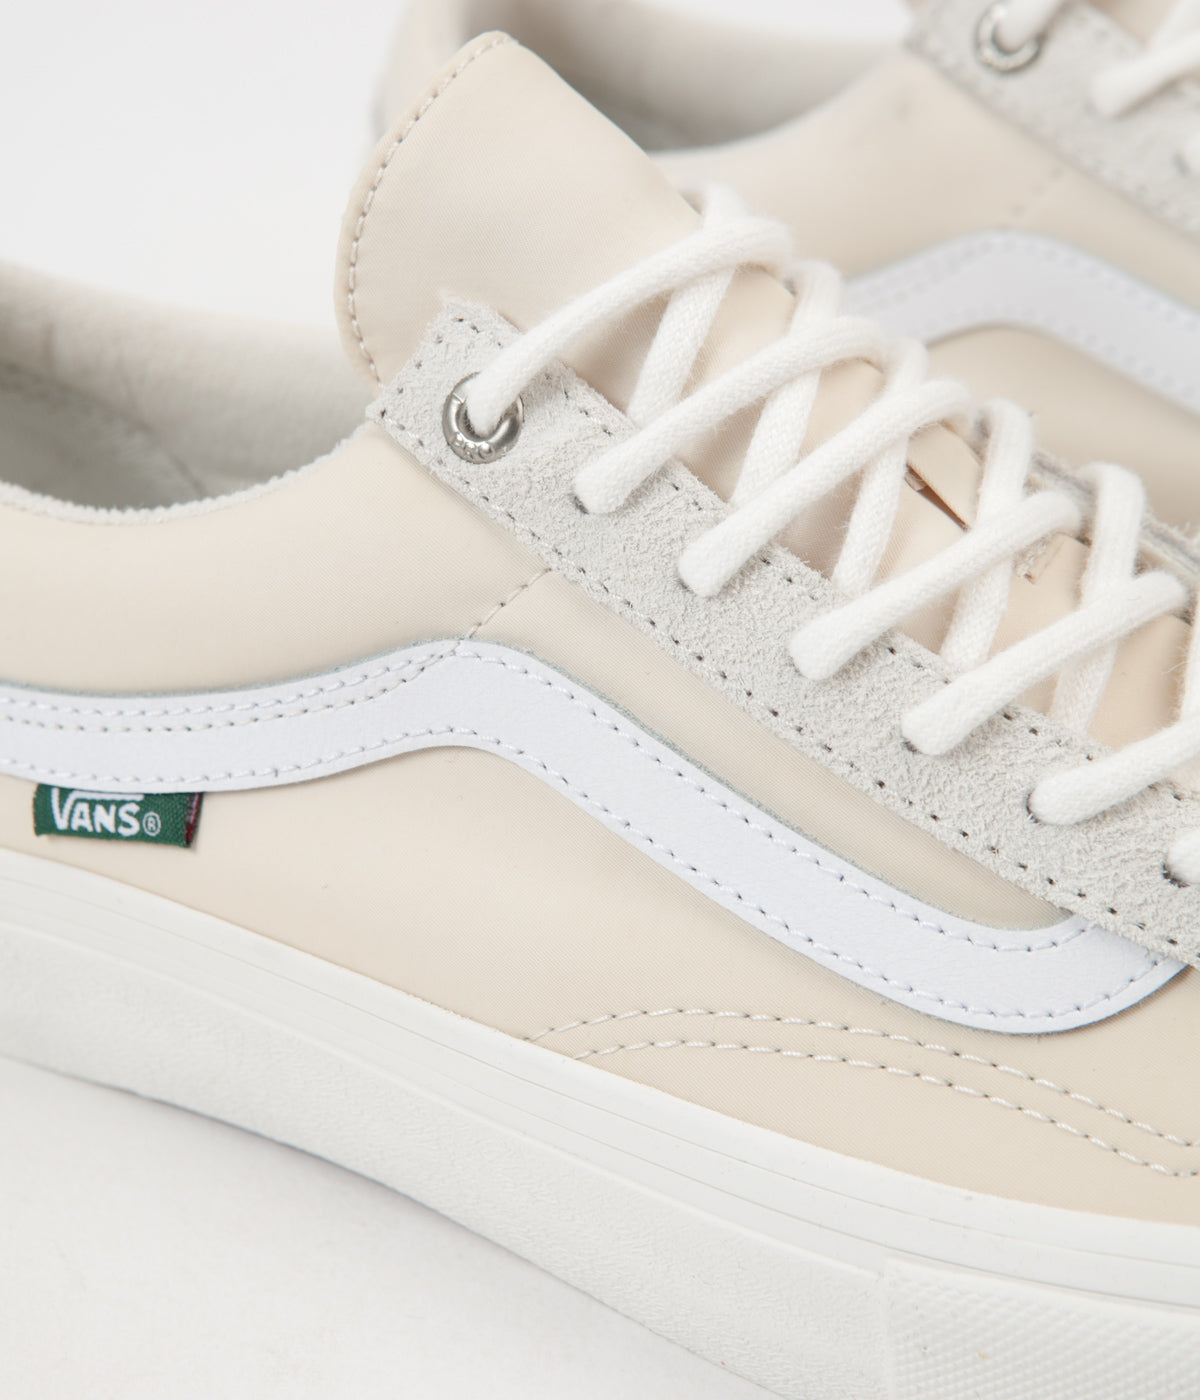 vans shoe company Online Shopping for